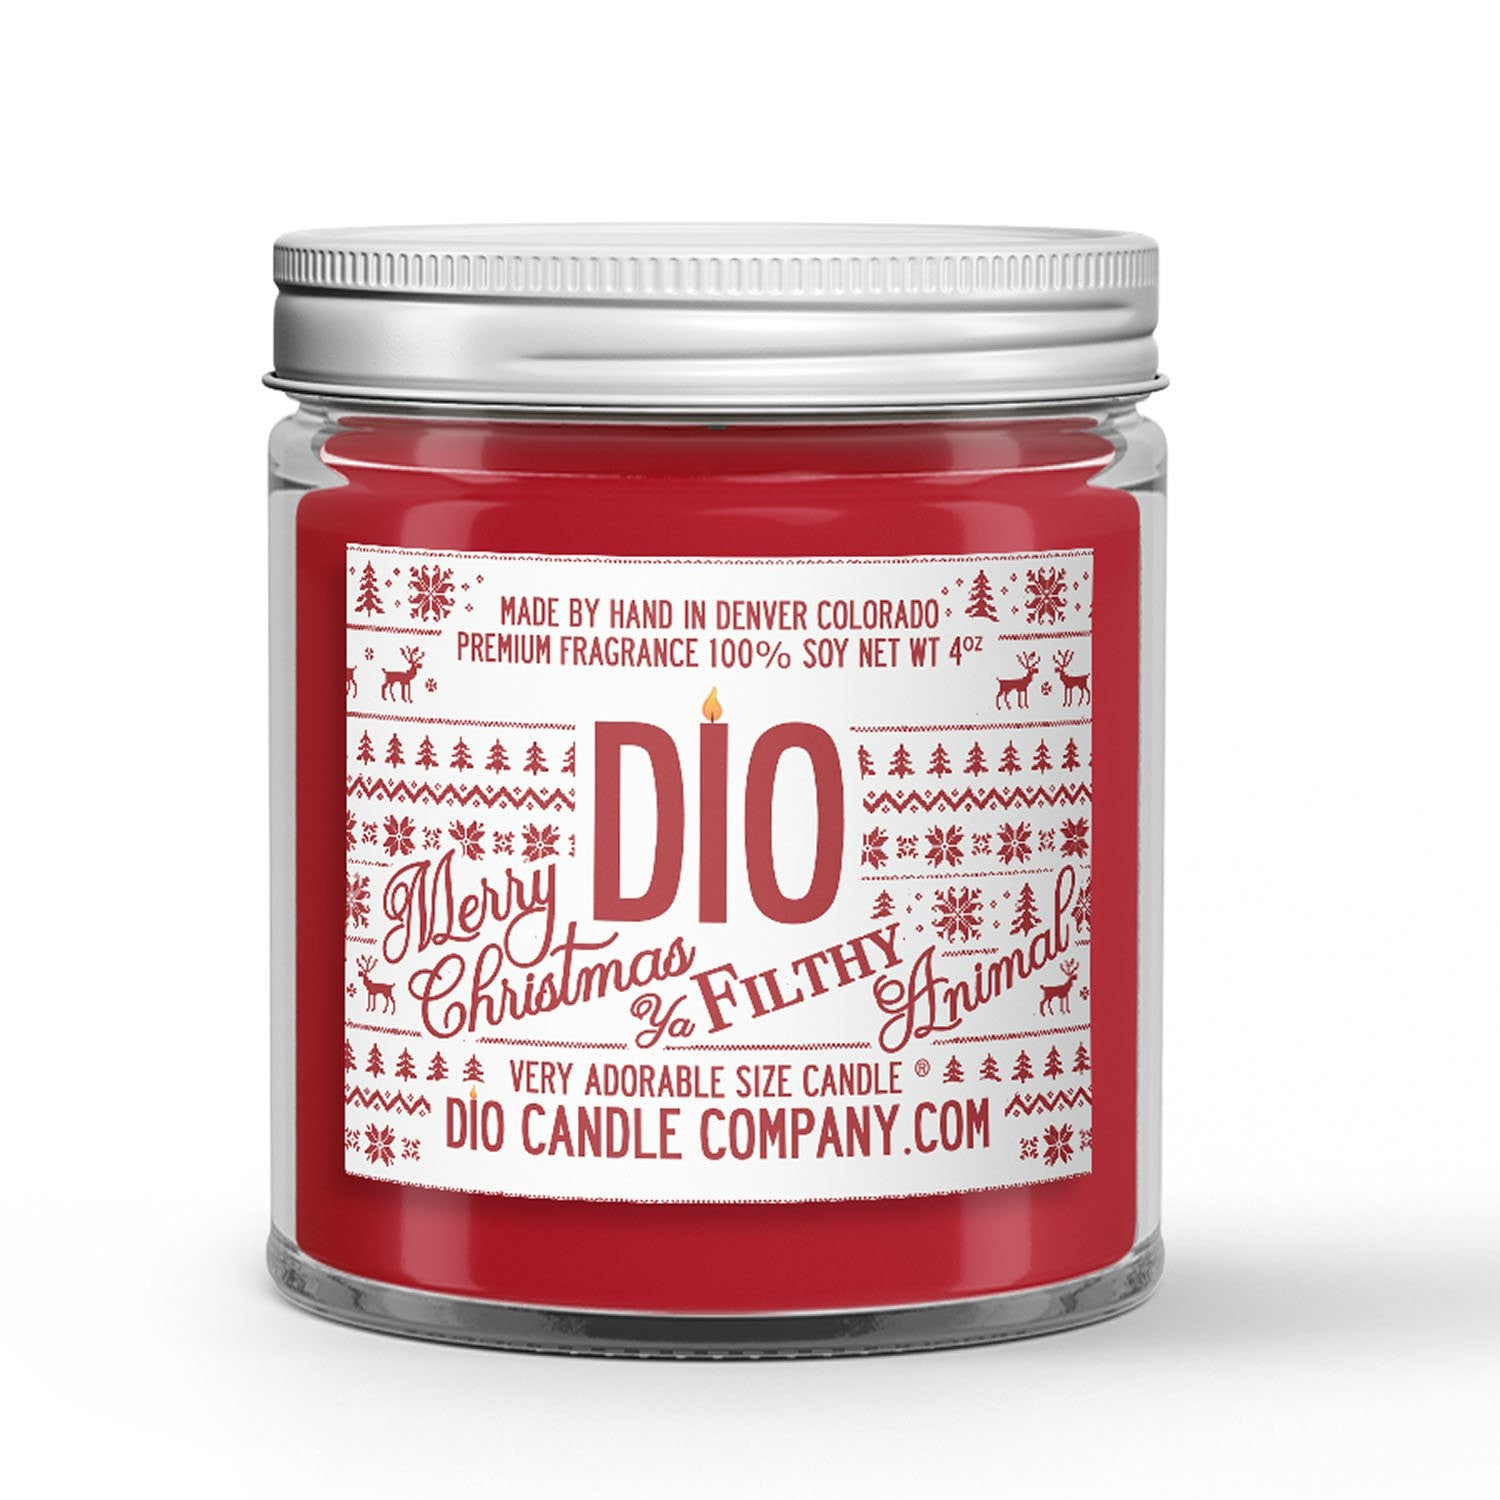 Merry Christmas Ya Filthy Animal Candle Christmas Tree - Orange Spice Scented - Dio Candle Company